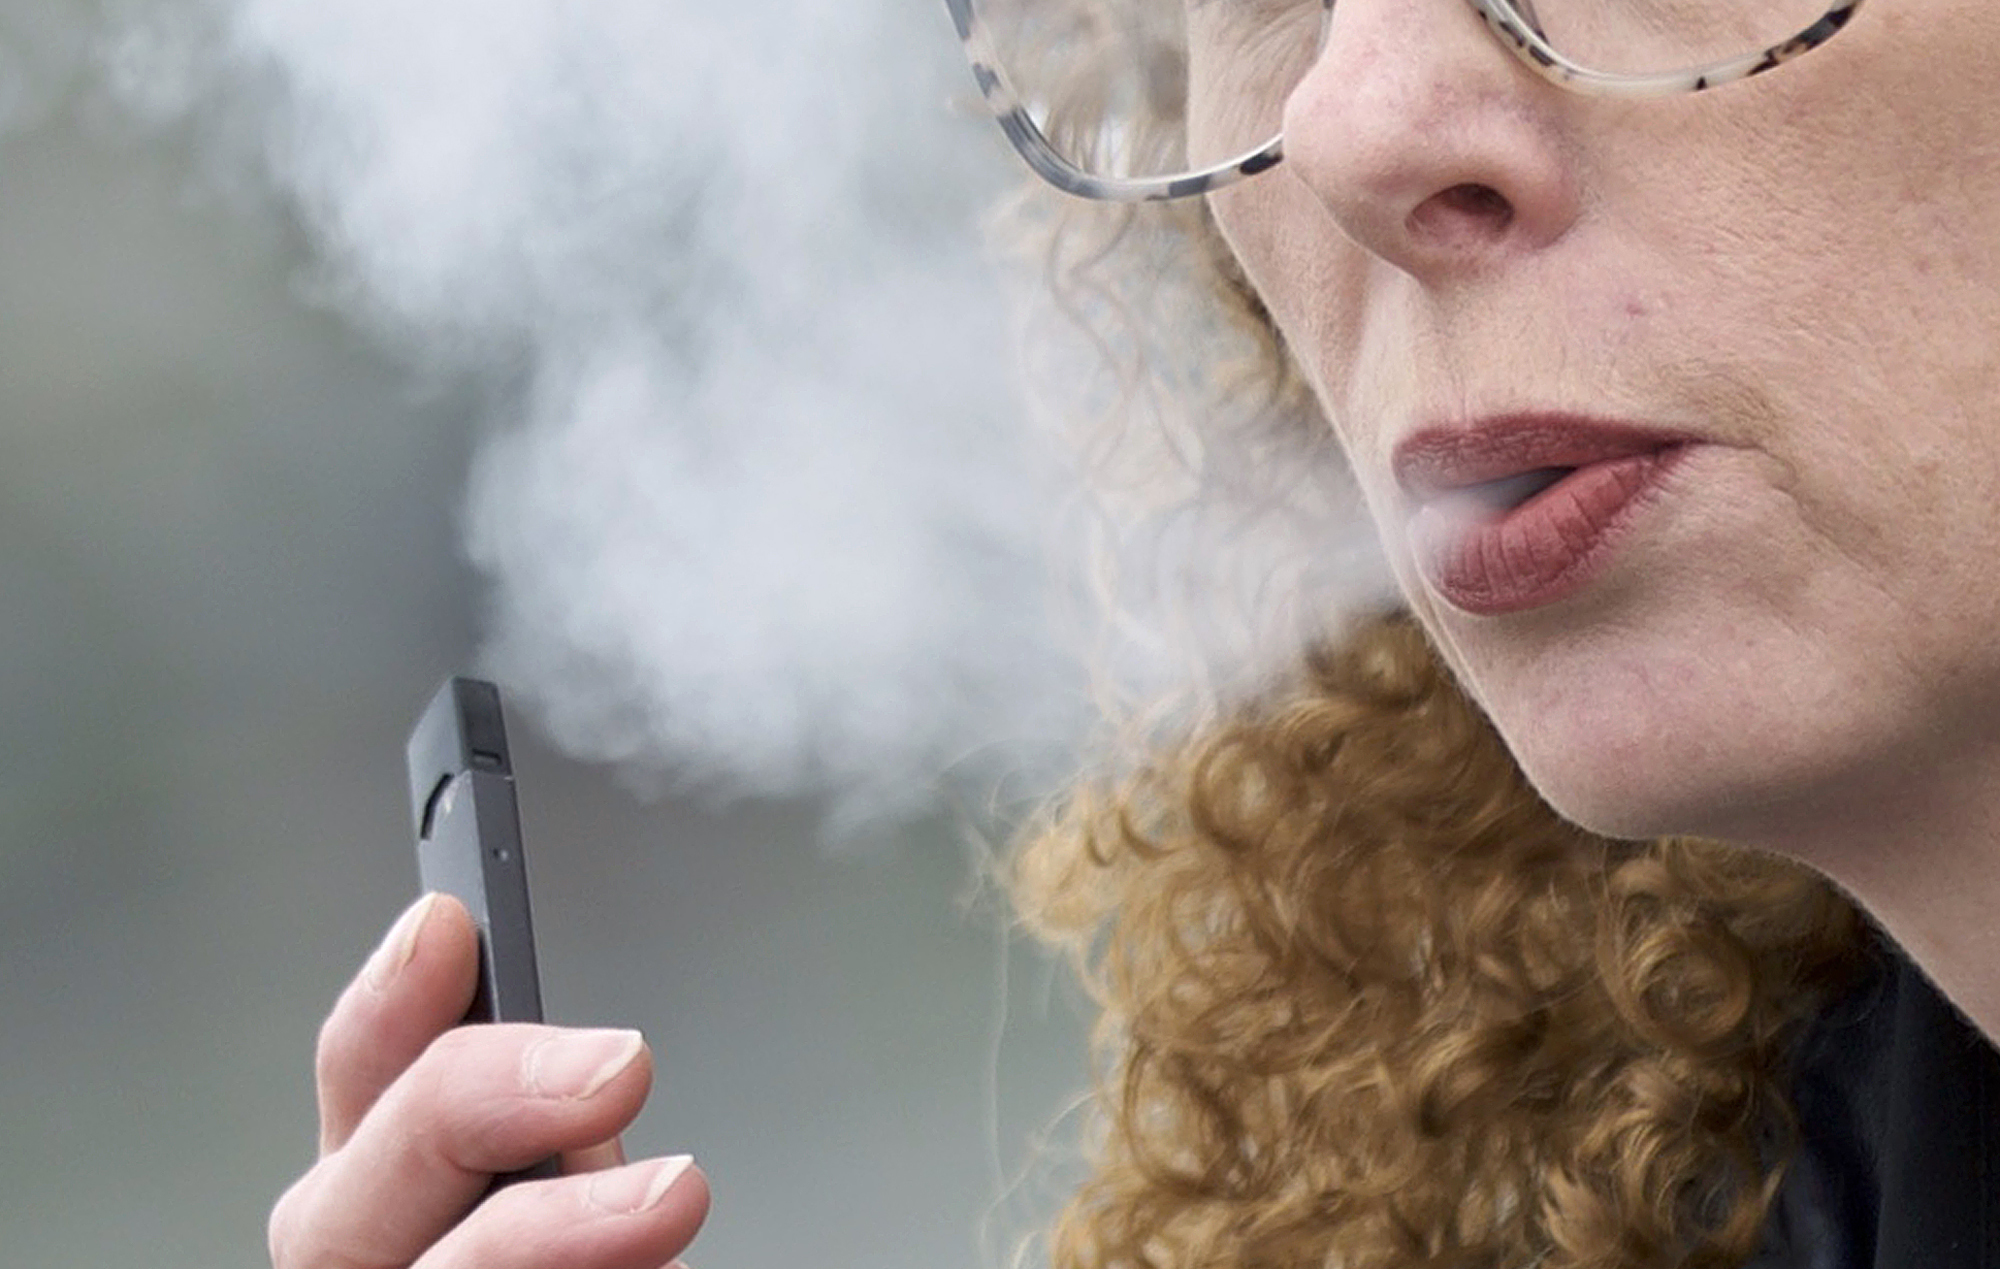 NY sees doubling of severe lung illness cases linked to vaping